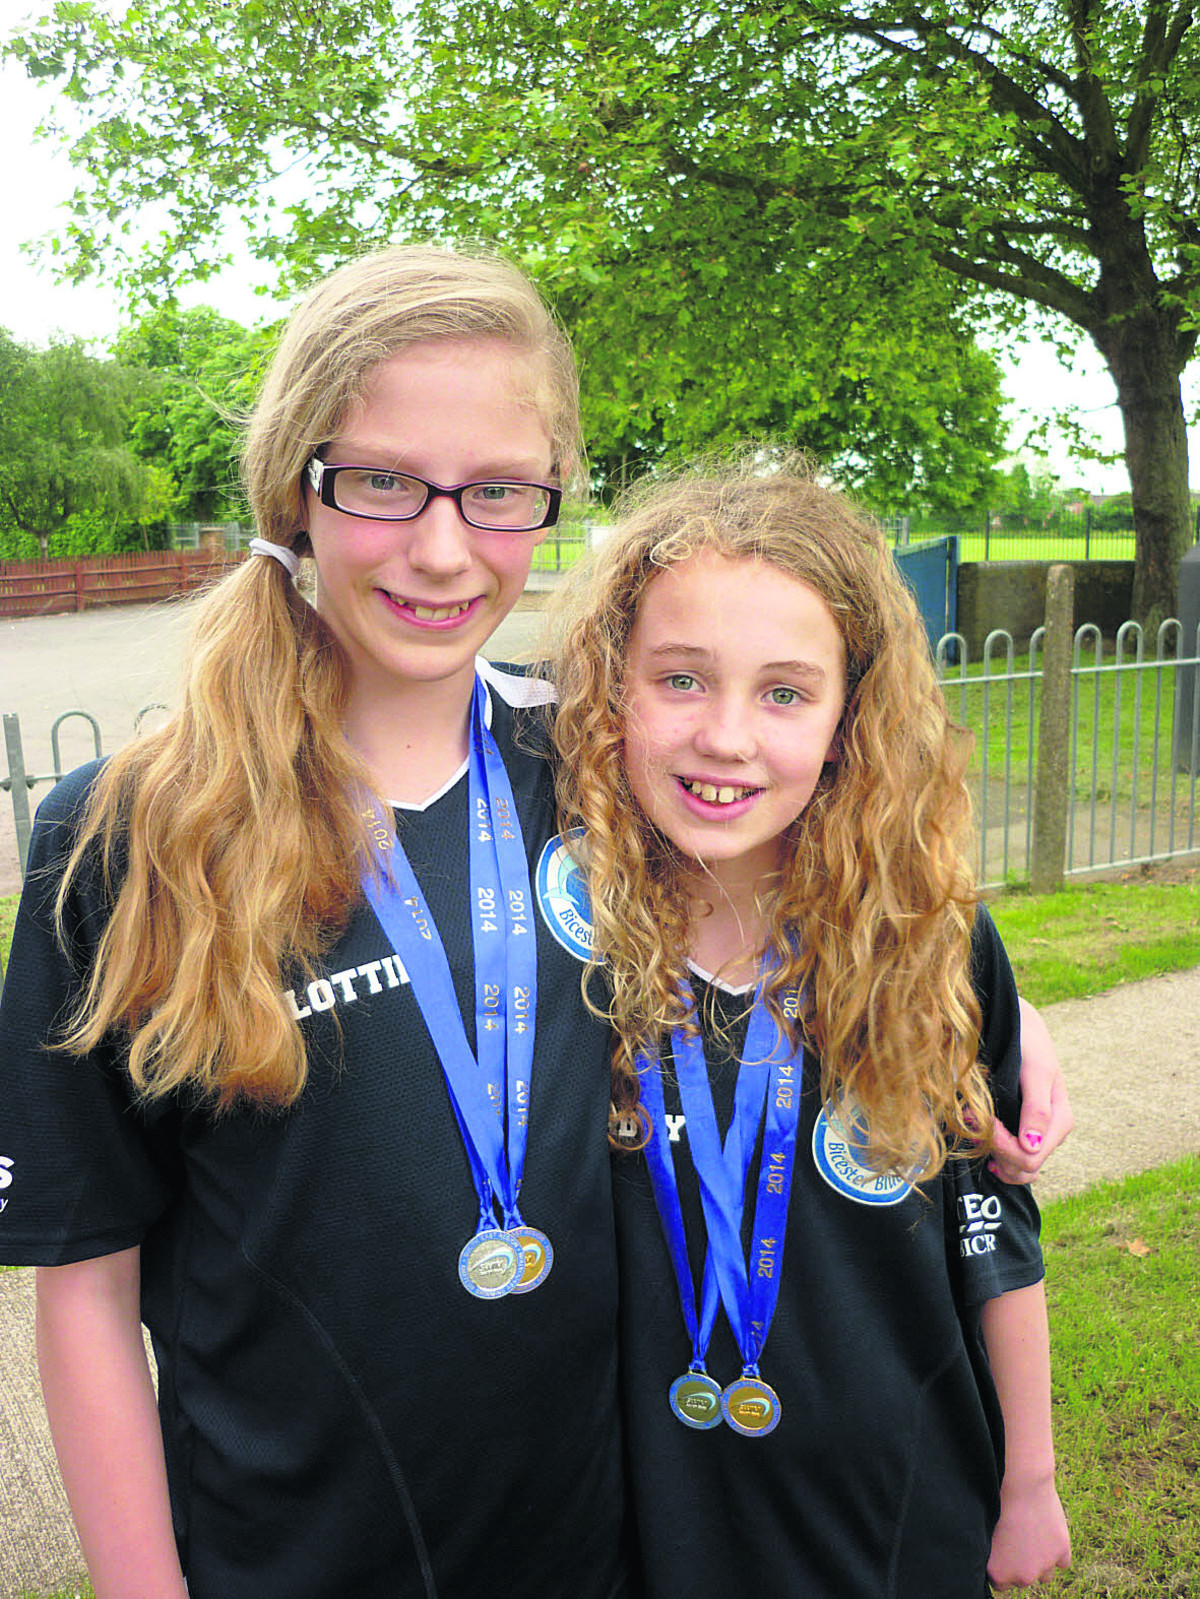 Lottie Wynne-Jones (left) and Maddy Powell show off their medals which they won at the South East England championships